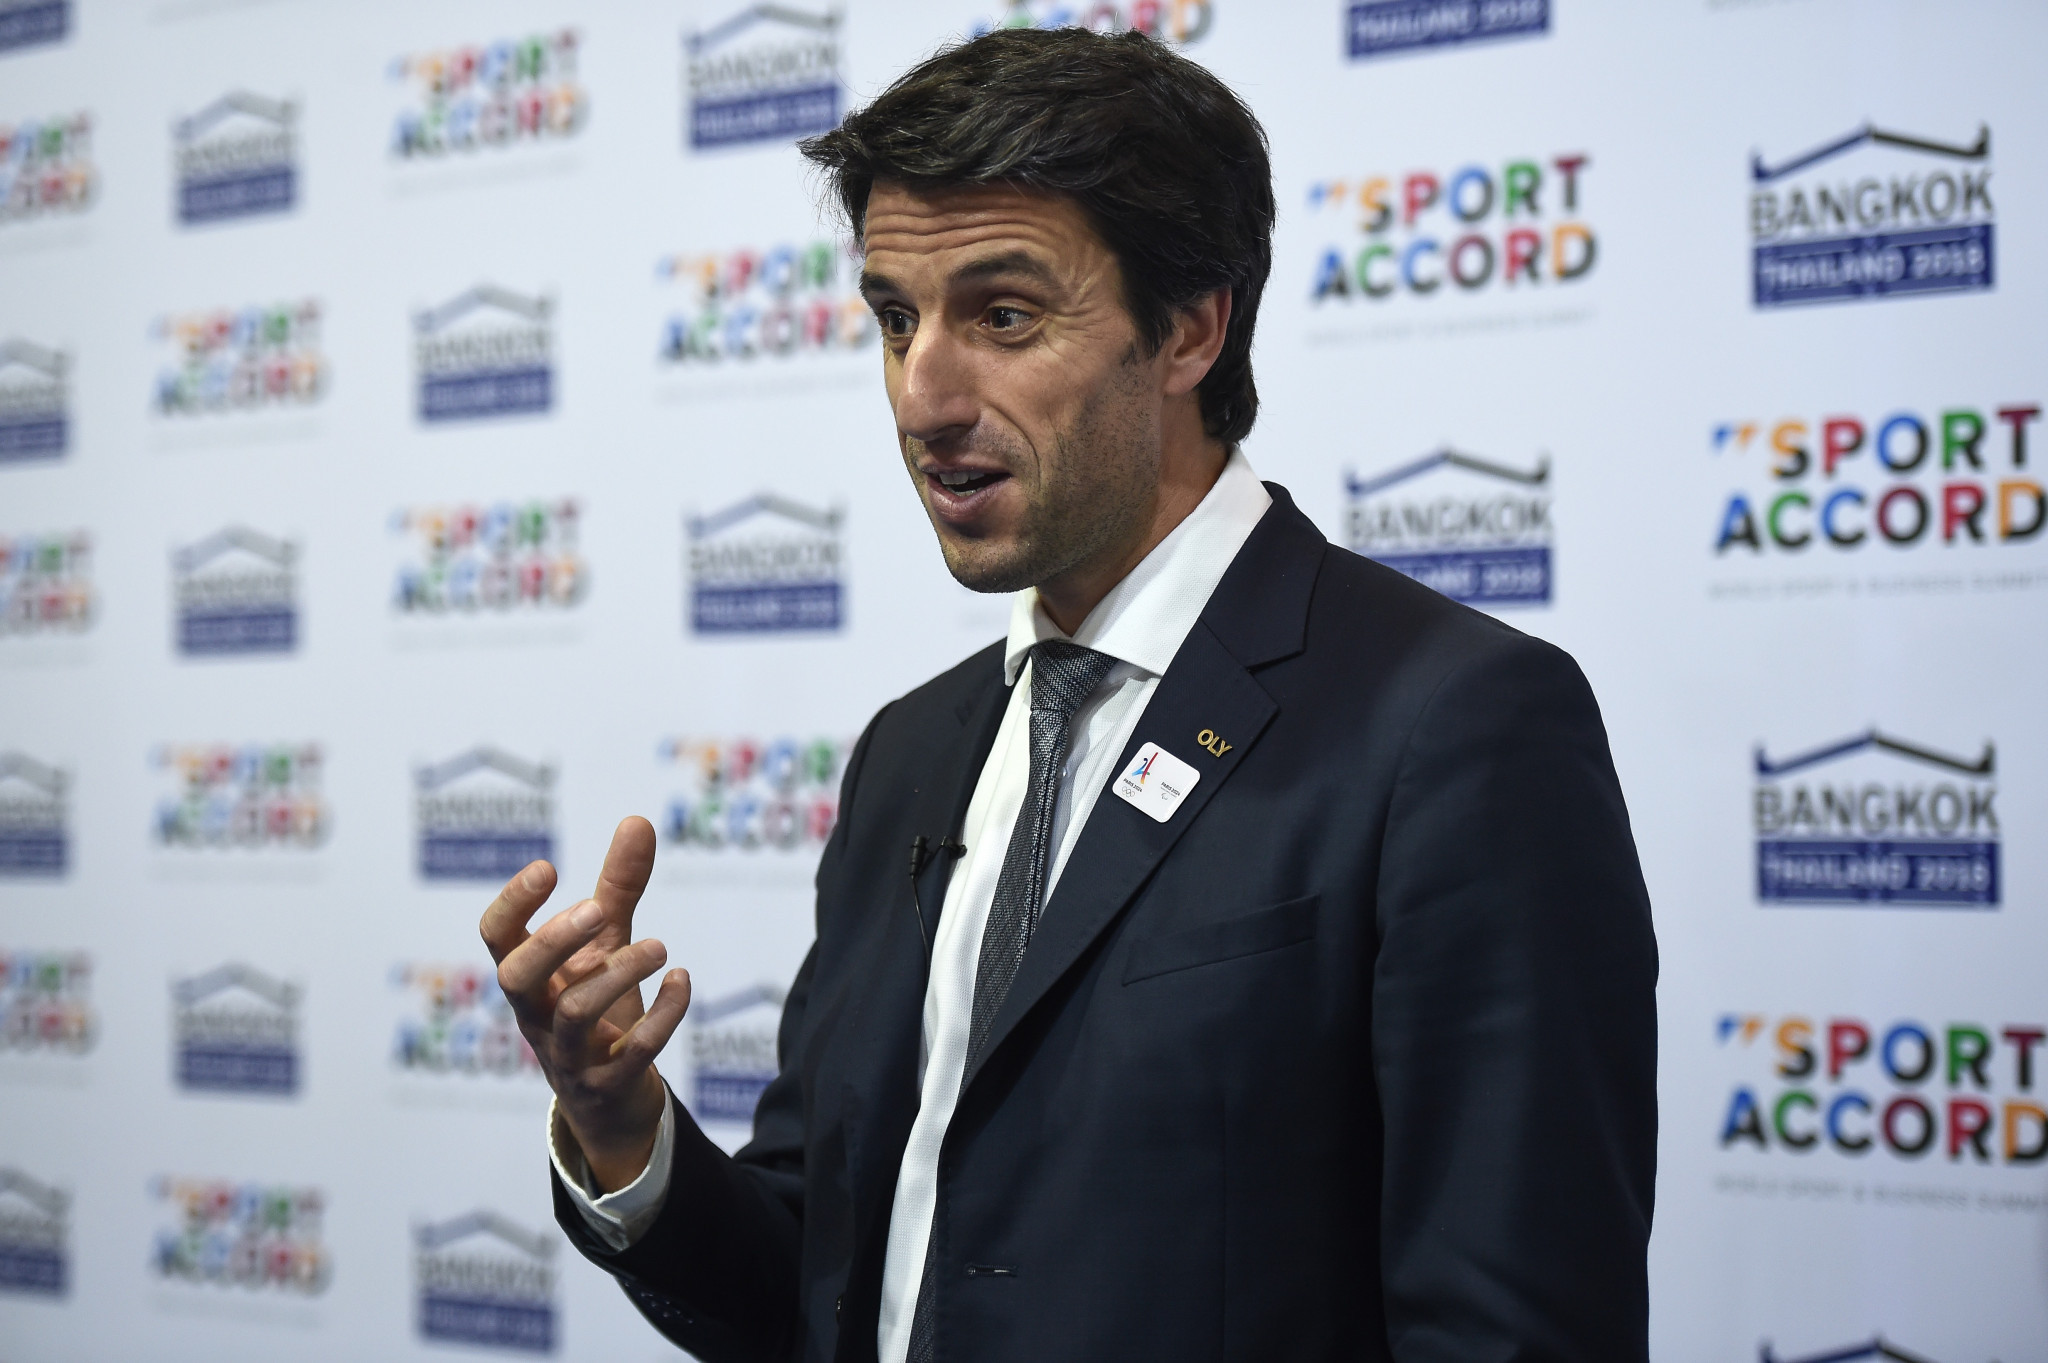 Estanguet claims still time to change Paris 2024 concept after cost concerns